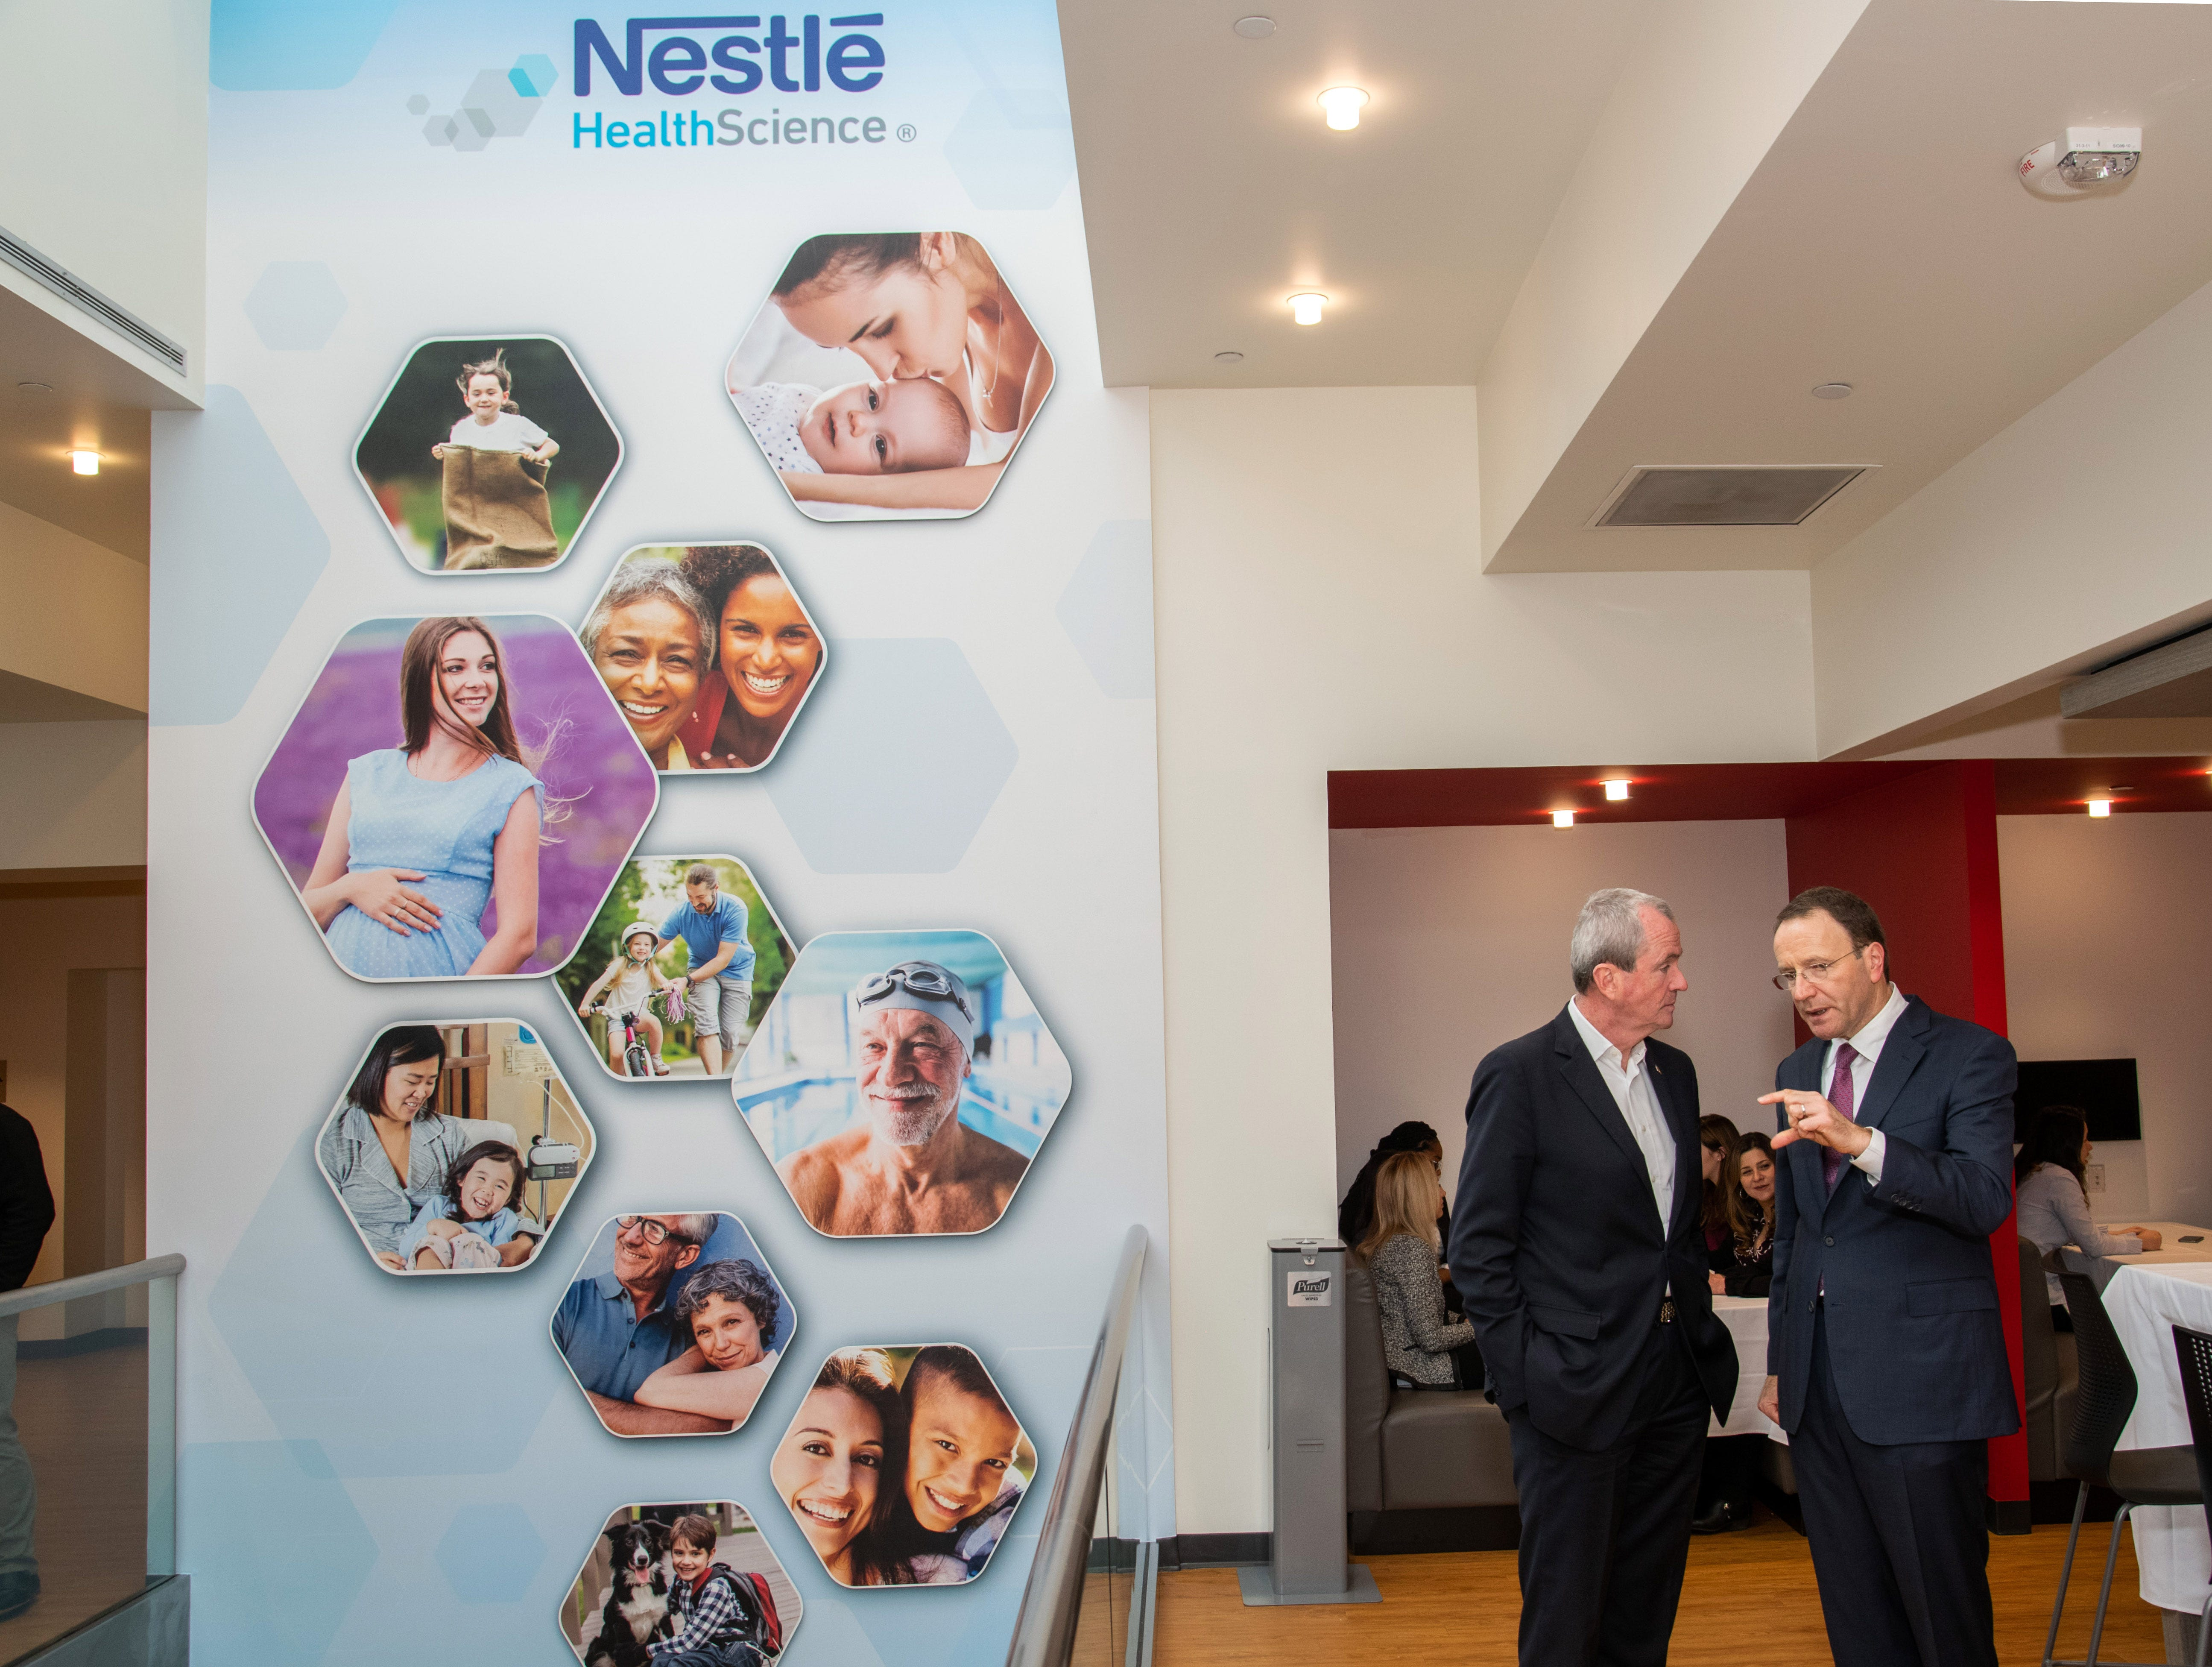 Phil Murphy, Governor of New Jersey, left, meets with Mark Schneider, CEO, Nestlé S.A., at the inauguration of Nestlé Health Science's Product Technology Center on Monday, Dec. 3, 2018 in Bridgewater, N.J. (Charles Sykes/AP Images for Nestlé)